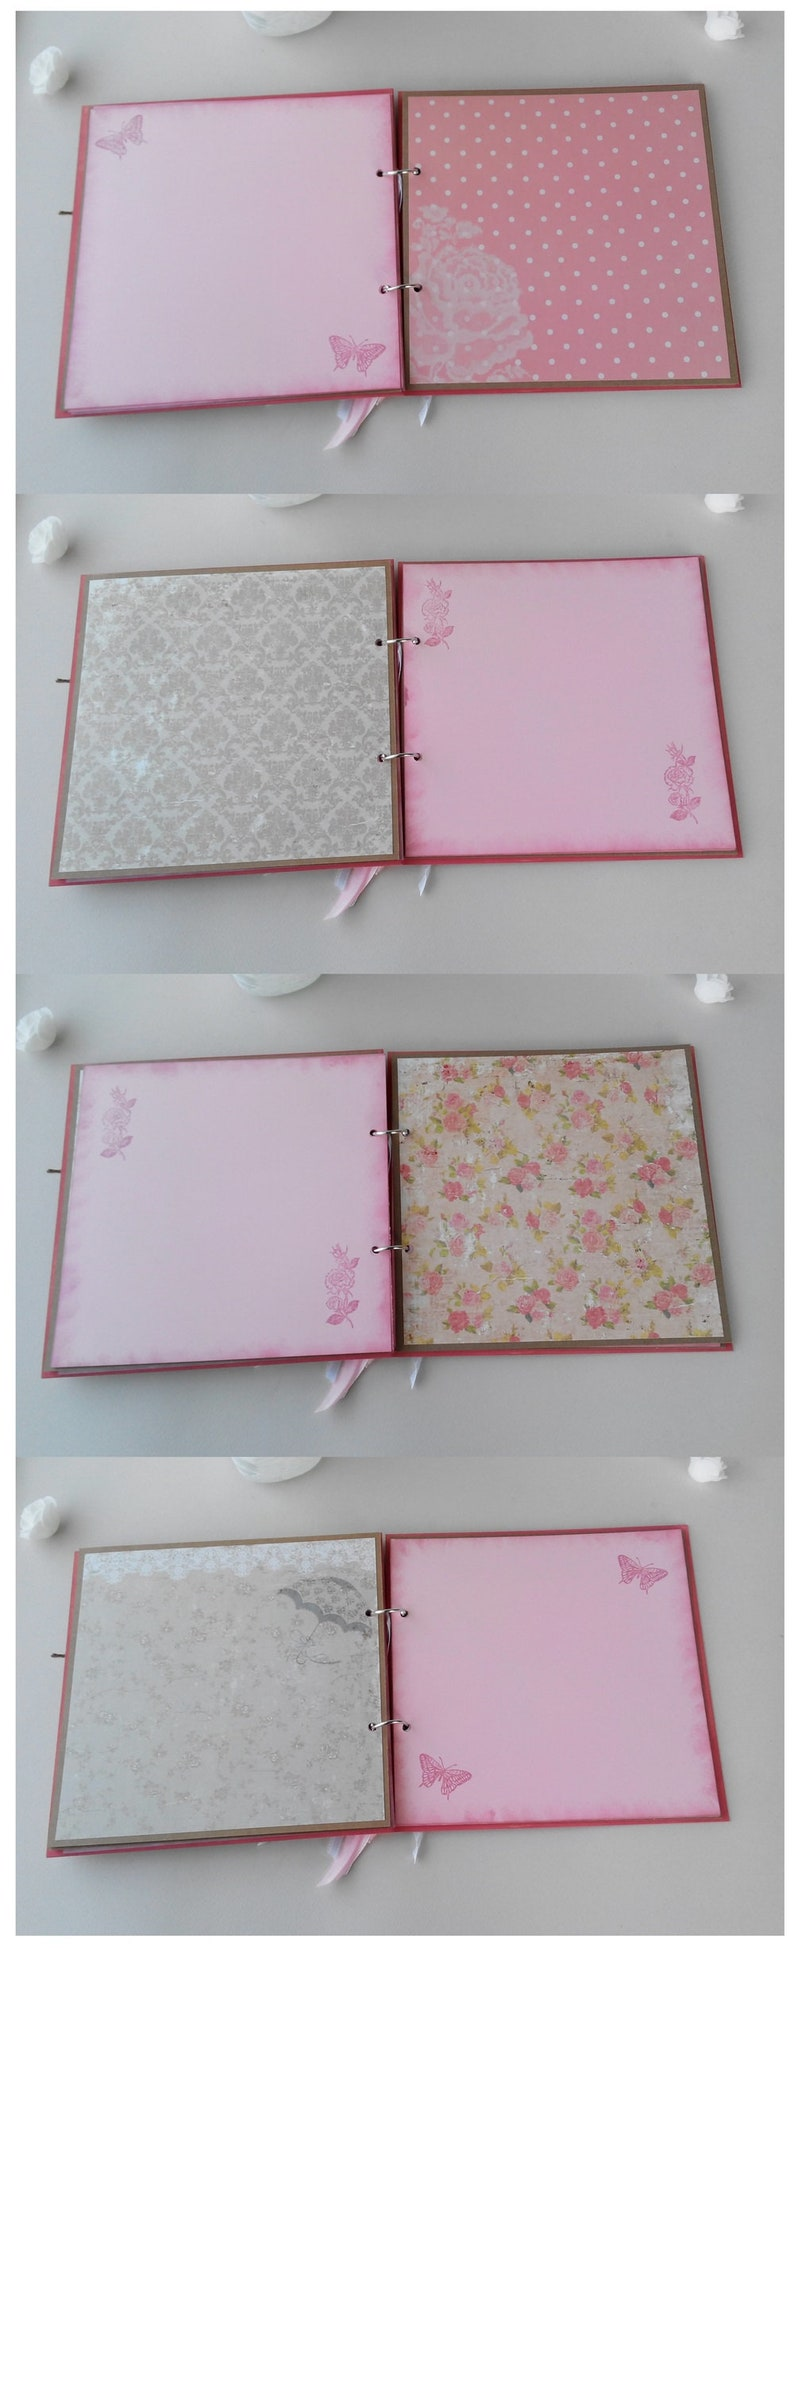 Wishes Book Baby Girl Shower Guest Book Pregnancy Journal Shabby Roses Chic Clothespin Christening Guest Book Baby Scrapbook